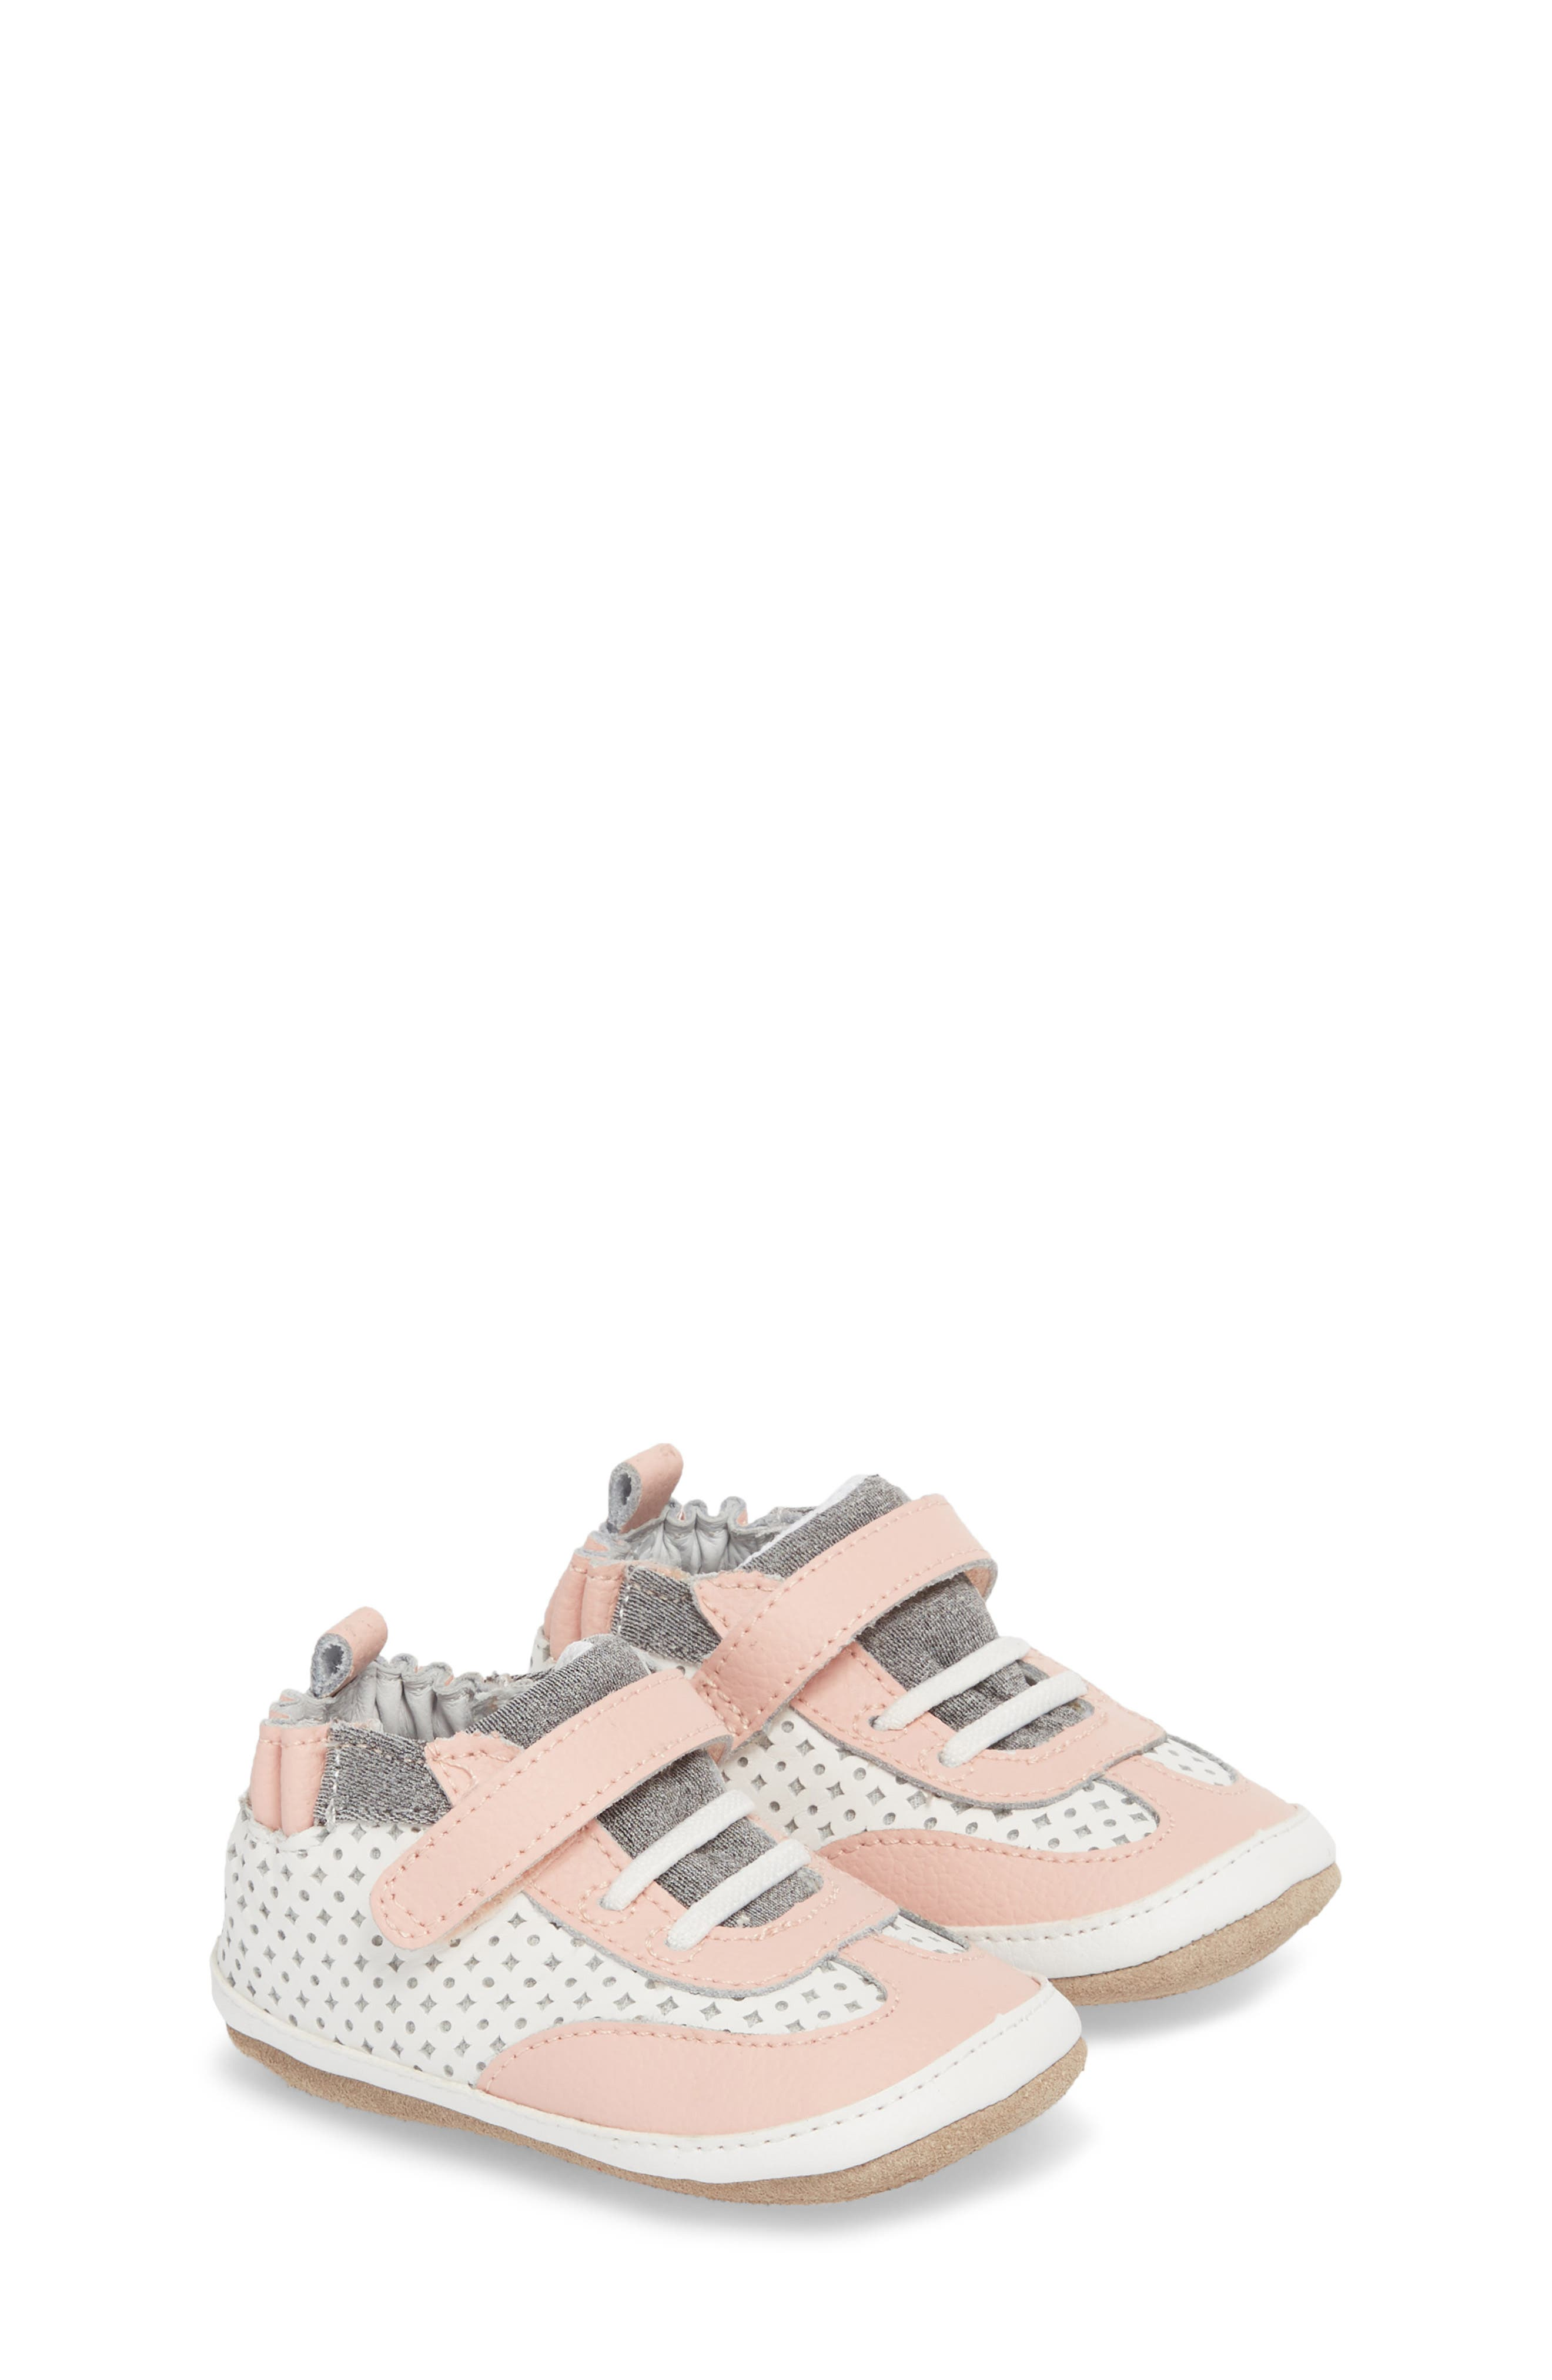 Mini Shoez Katie's Kicks Sneaker,                             Main thumbnail 1, color,                             PINK